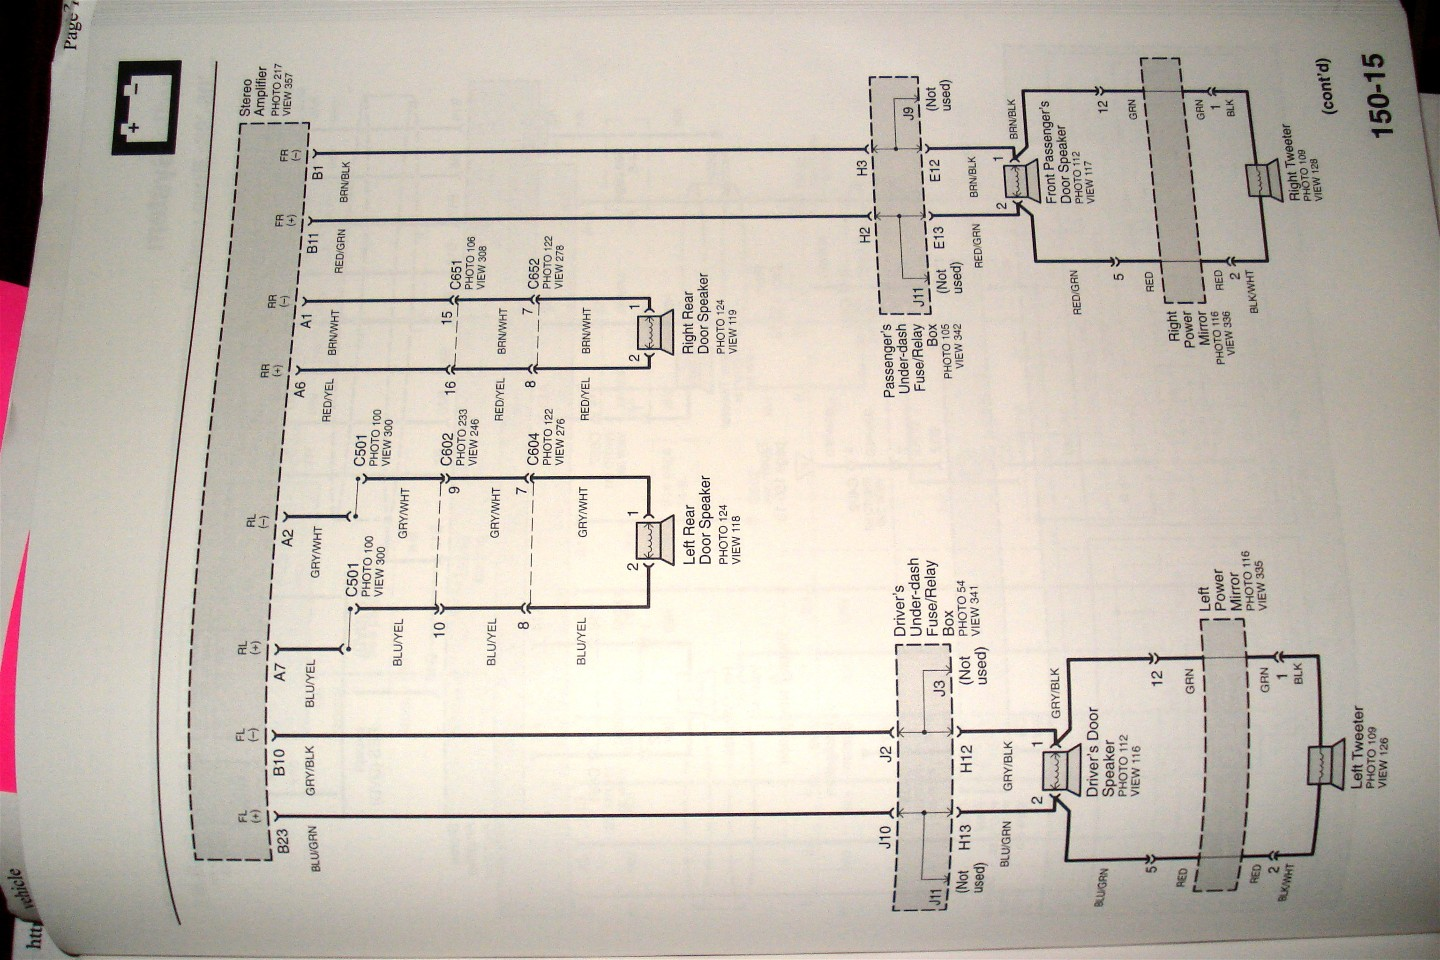 Acura Wiring Diagram With Bose The Portal And Forum Of 2006 Cadillac Amp Also Speaker In Library Rh 19 Kandelhof Restaurant De Subwoofer Diagrams